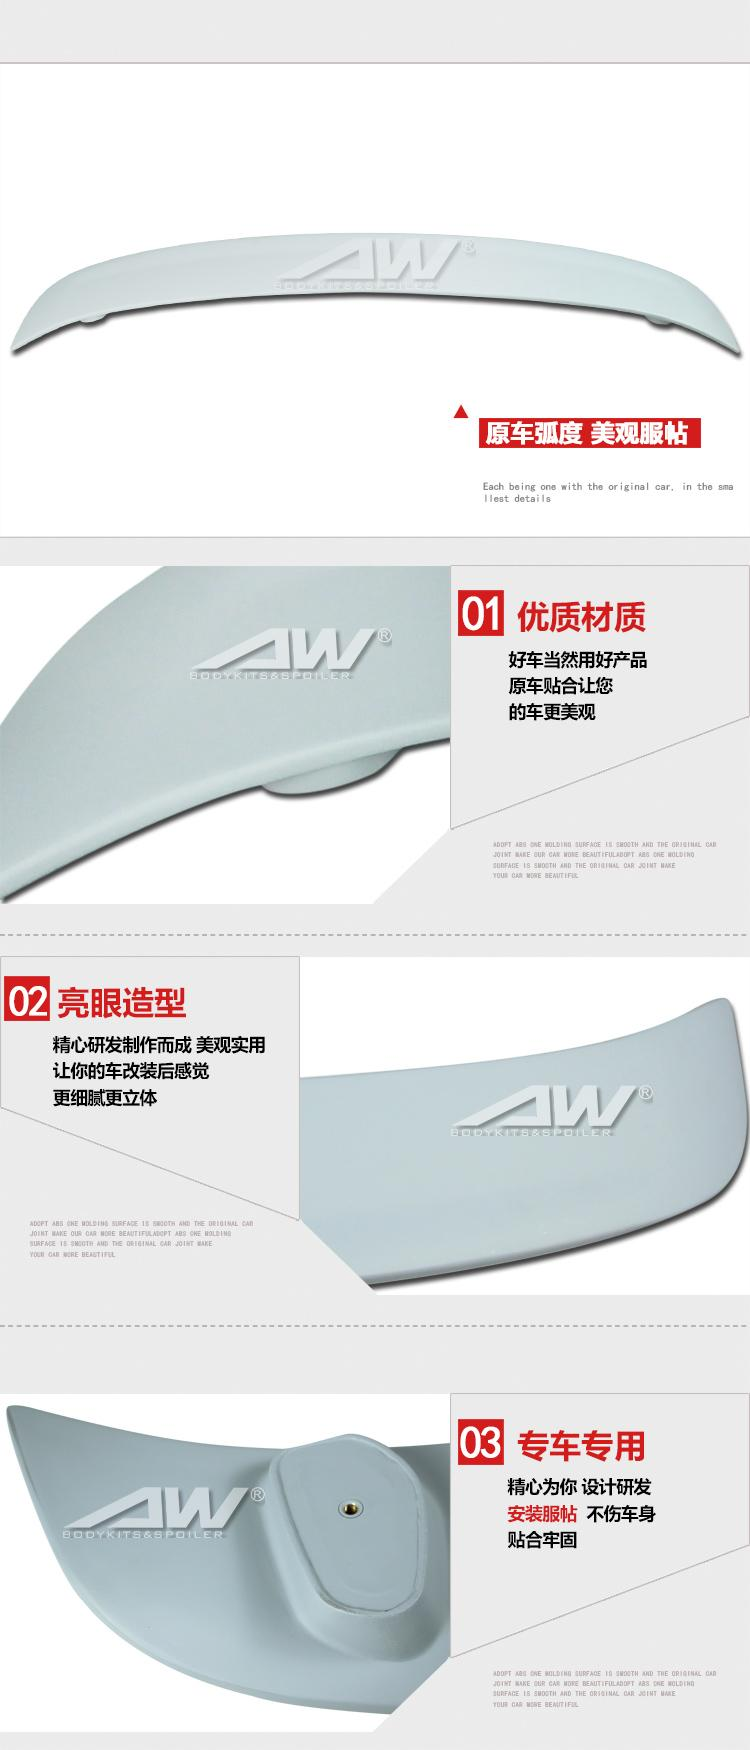 Ford Focus 09-12 Spoiler Car modification Body Kits  6